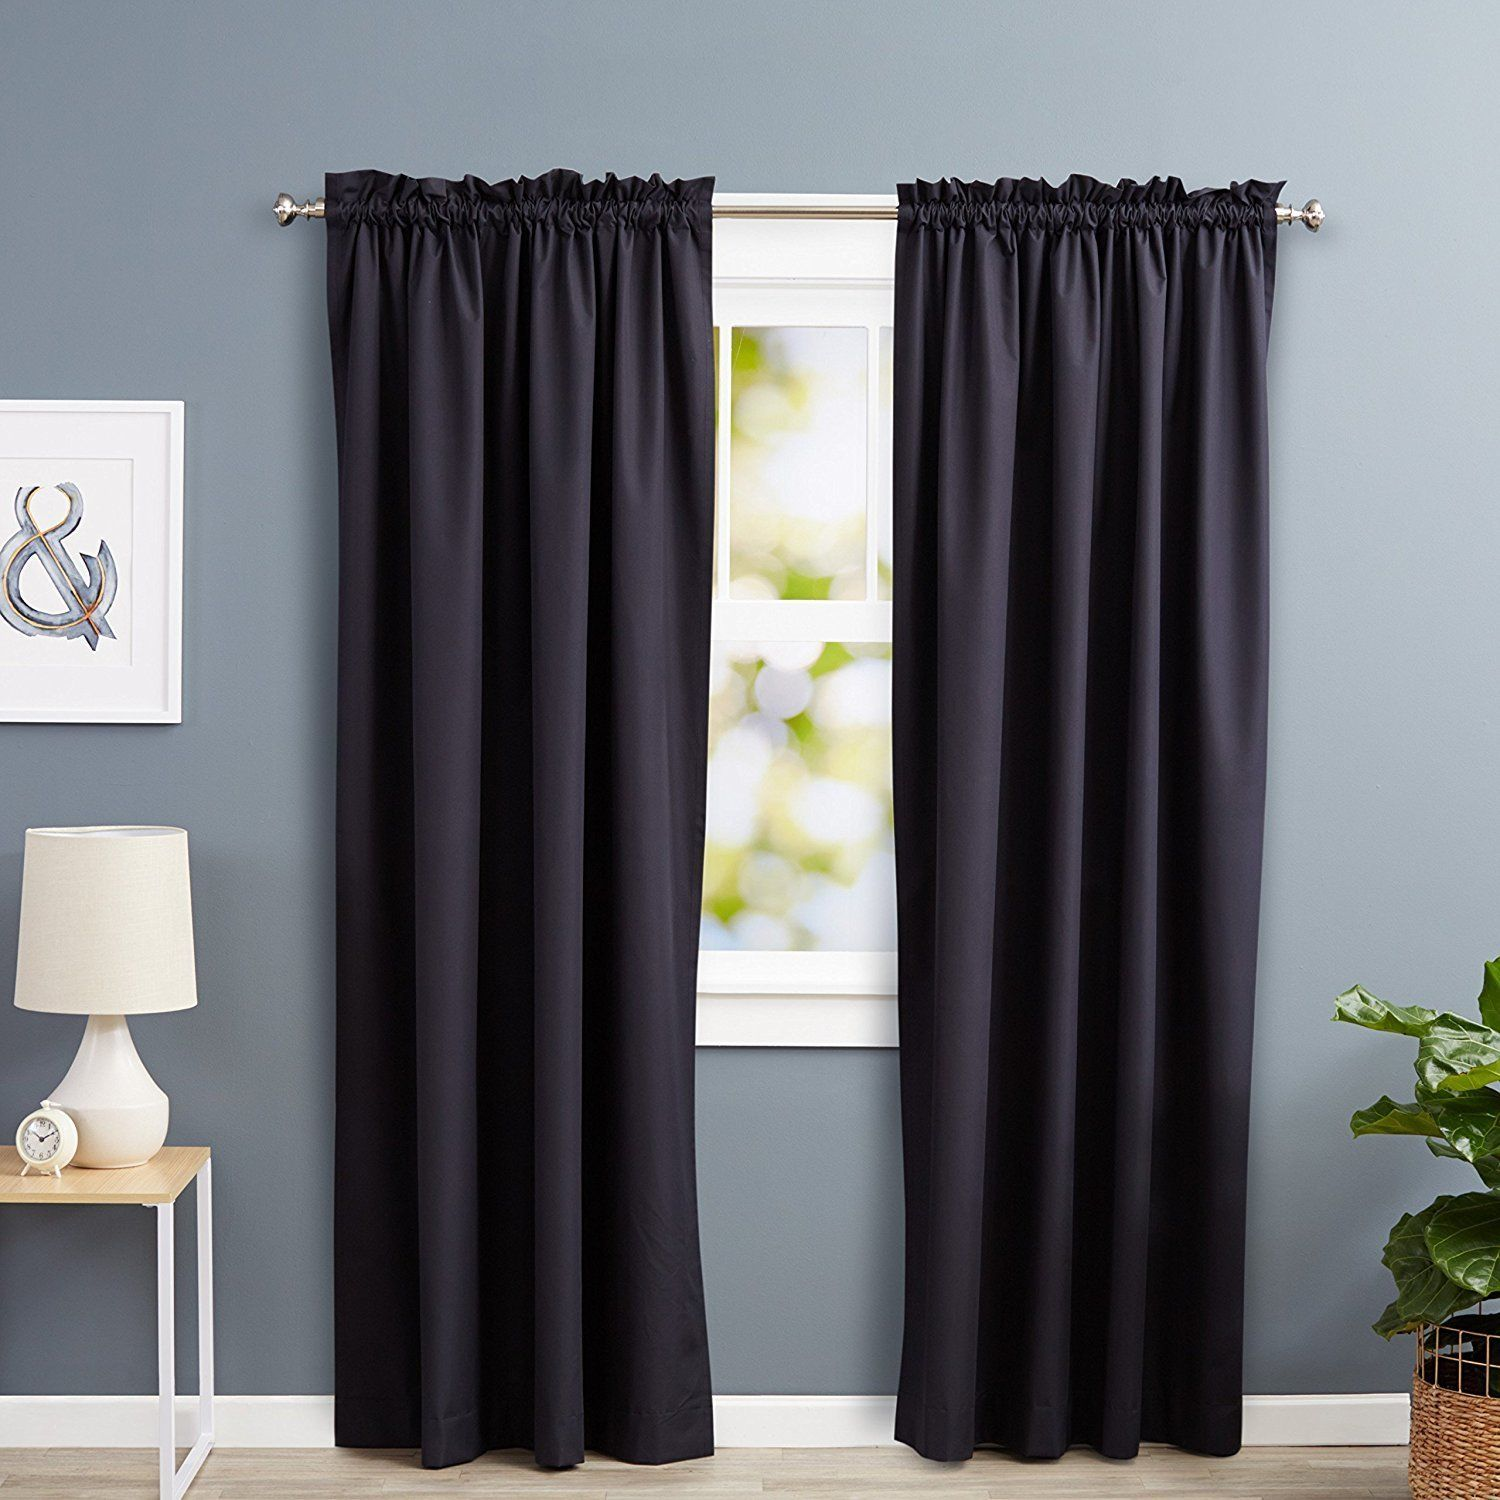 Grey Thermal Curtains 7 Of The Best Blackout Curtains On Amazon According To Reviewers